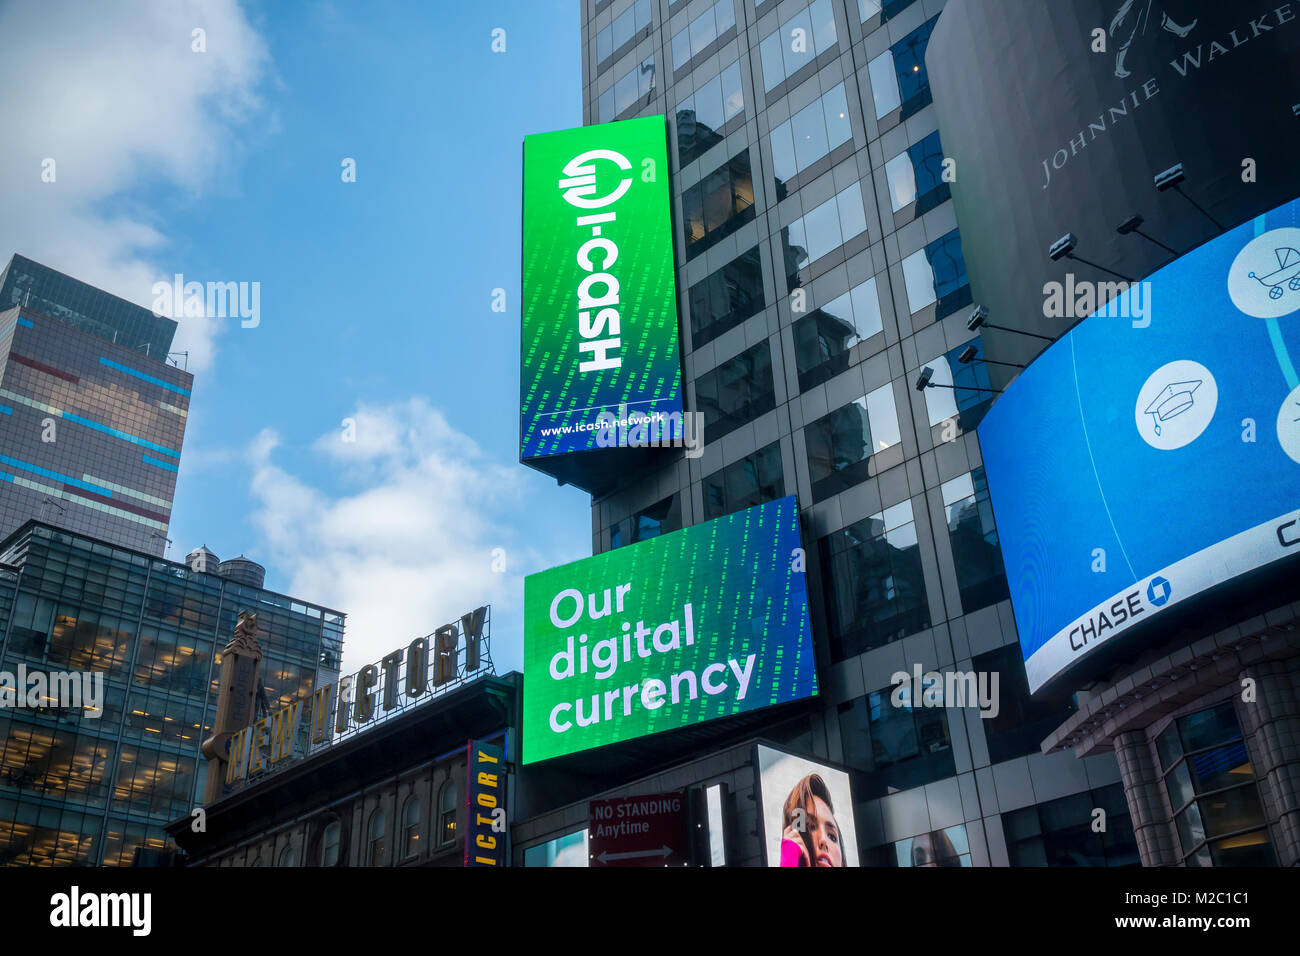 Advertising in Times Square in New York for iCash digital currency seen on Friday, February 2, 2018. iCash cryptocurrency - Stock Image